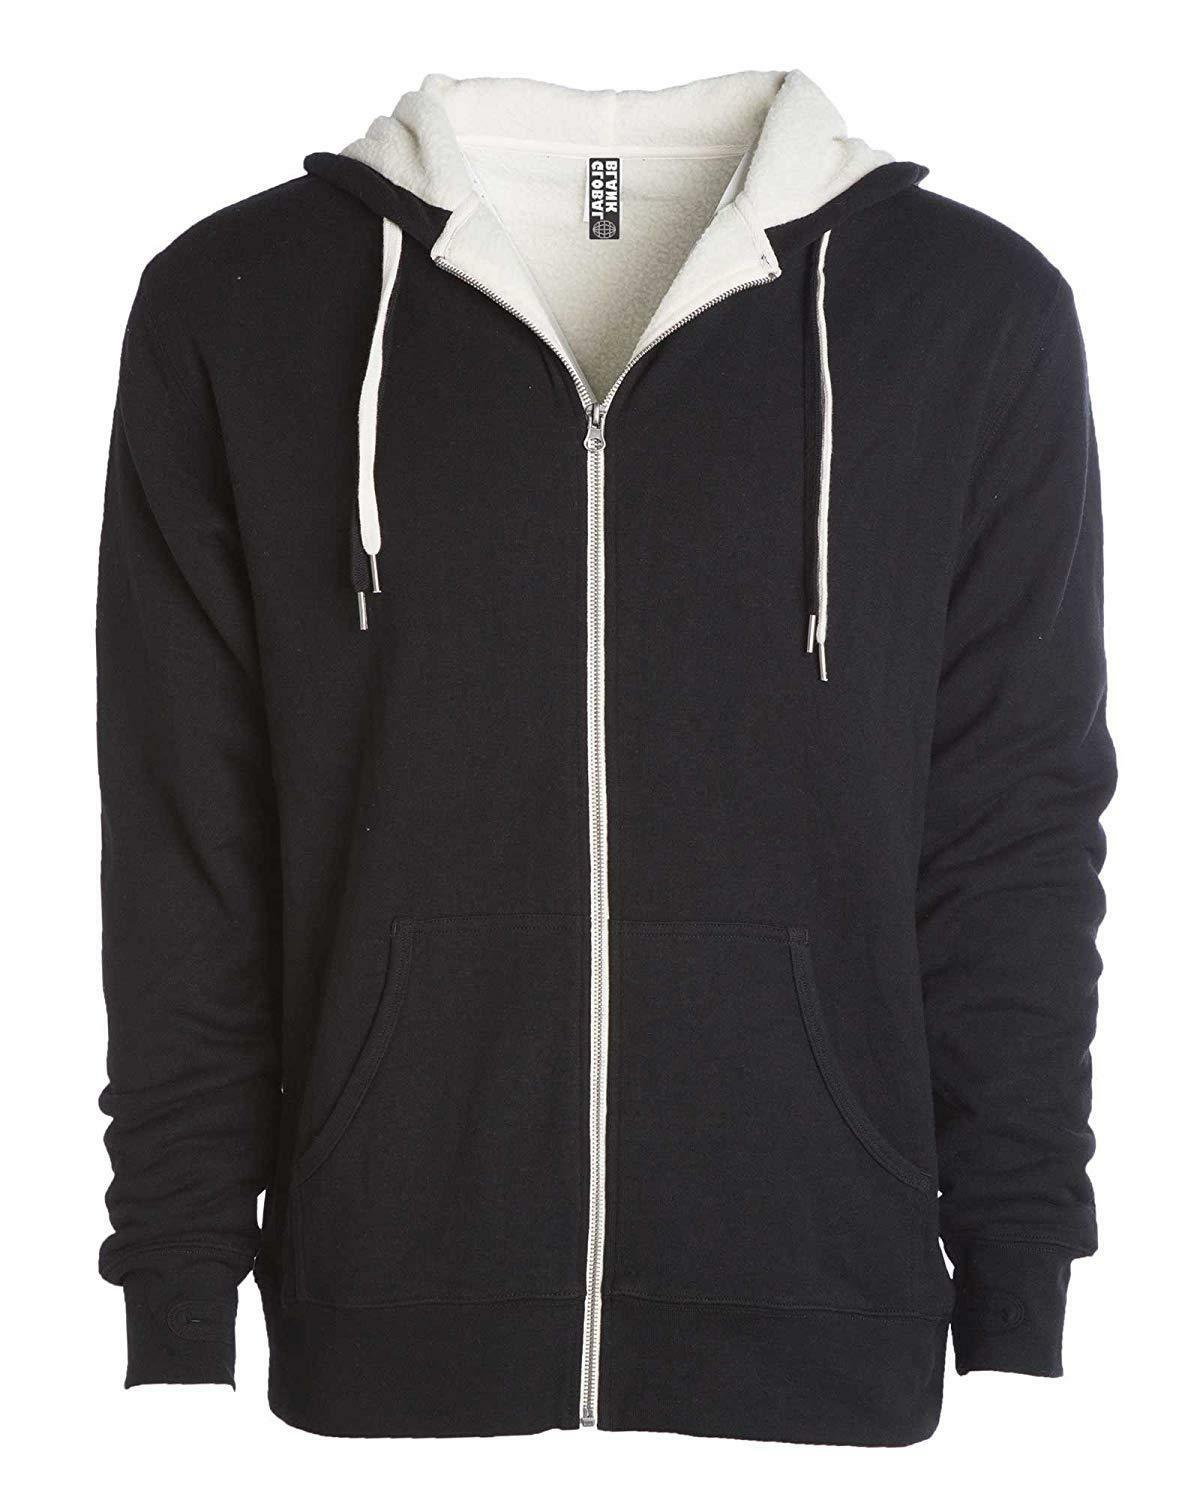 Global Heavyweight Sherpa Lined Up Fleece Hoodie H